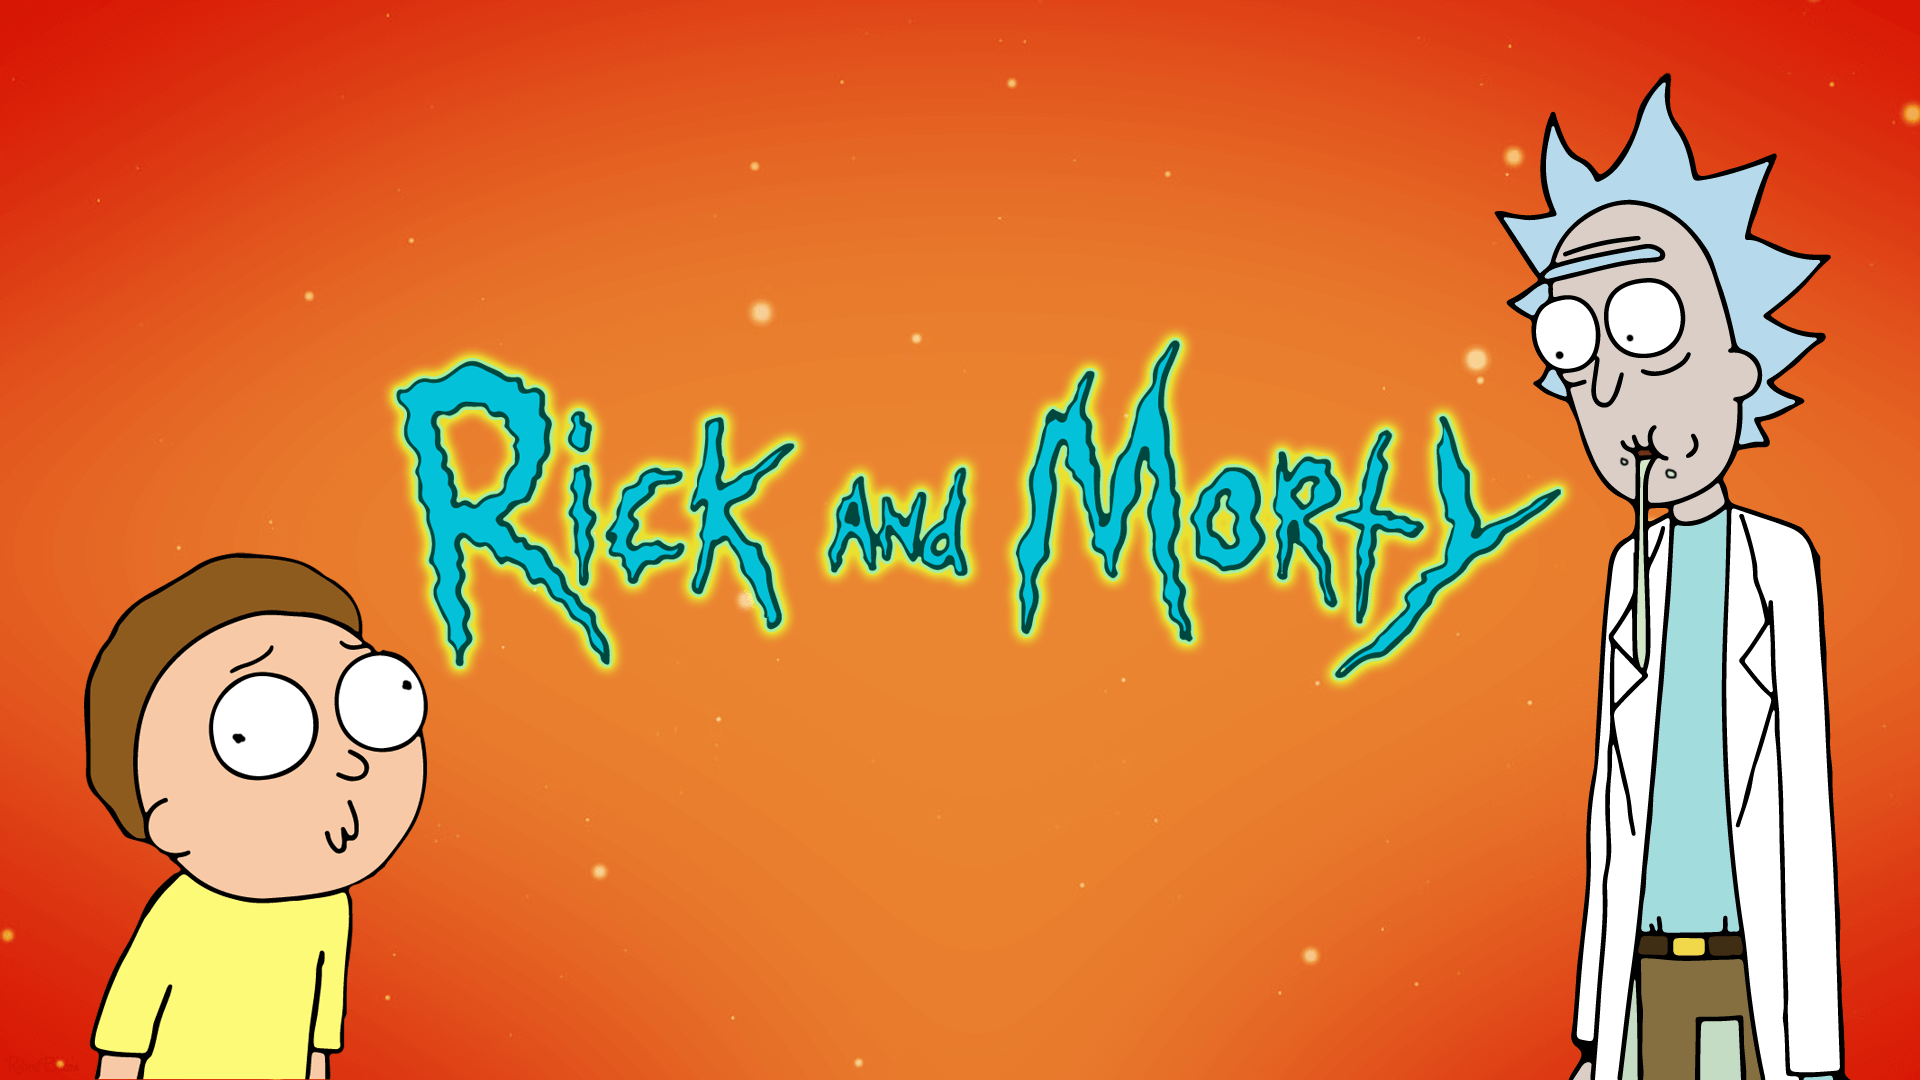 rick and morty wallpaper first (1)